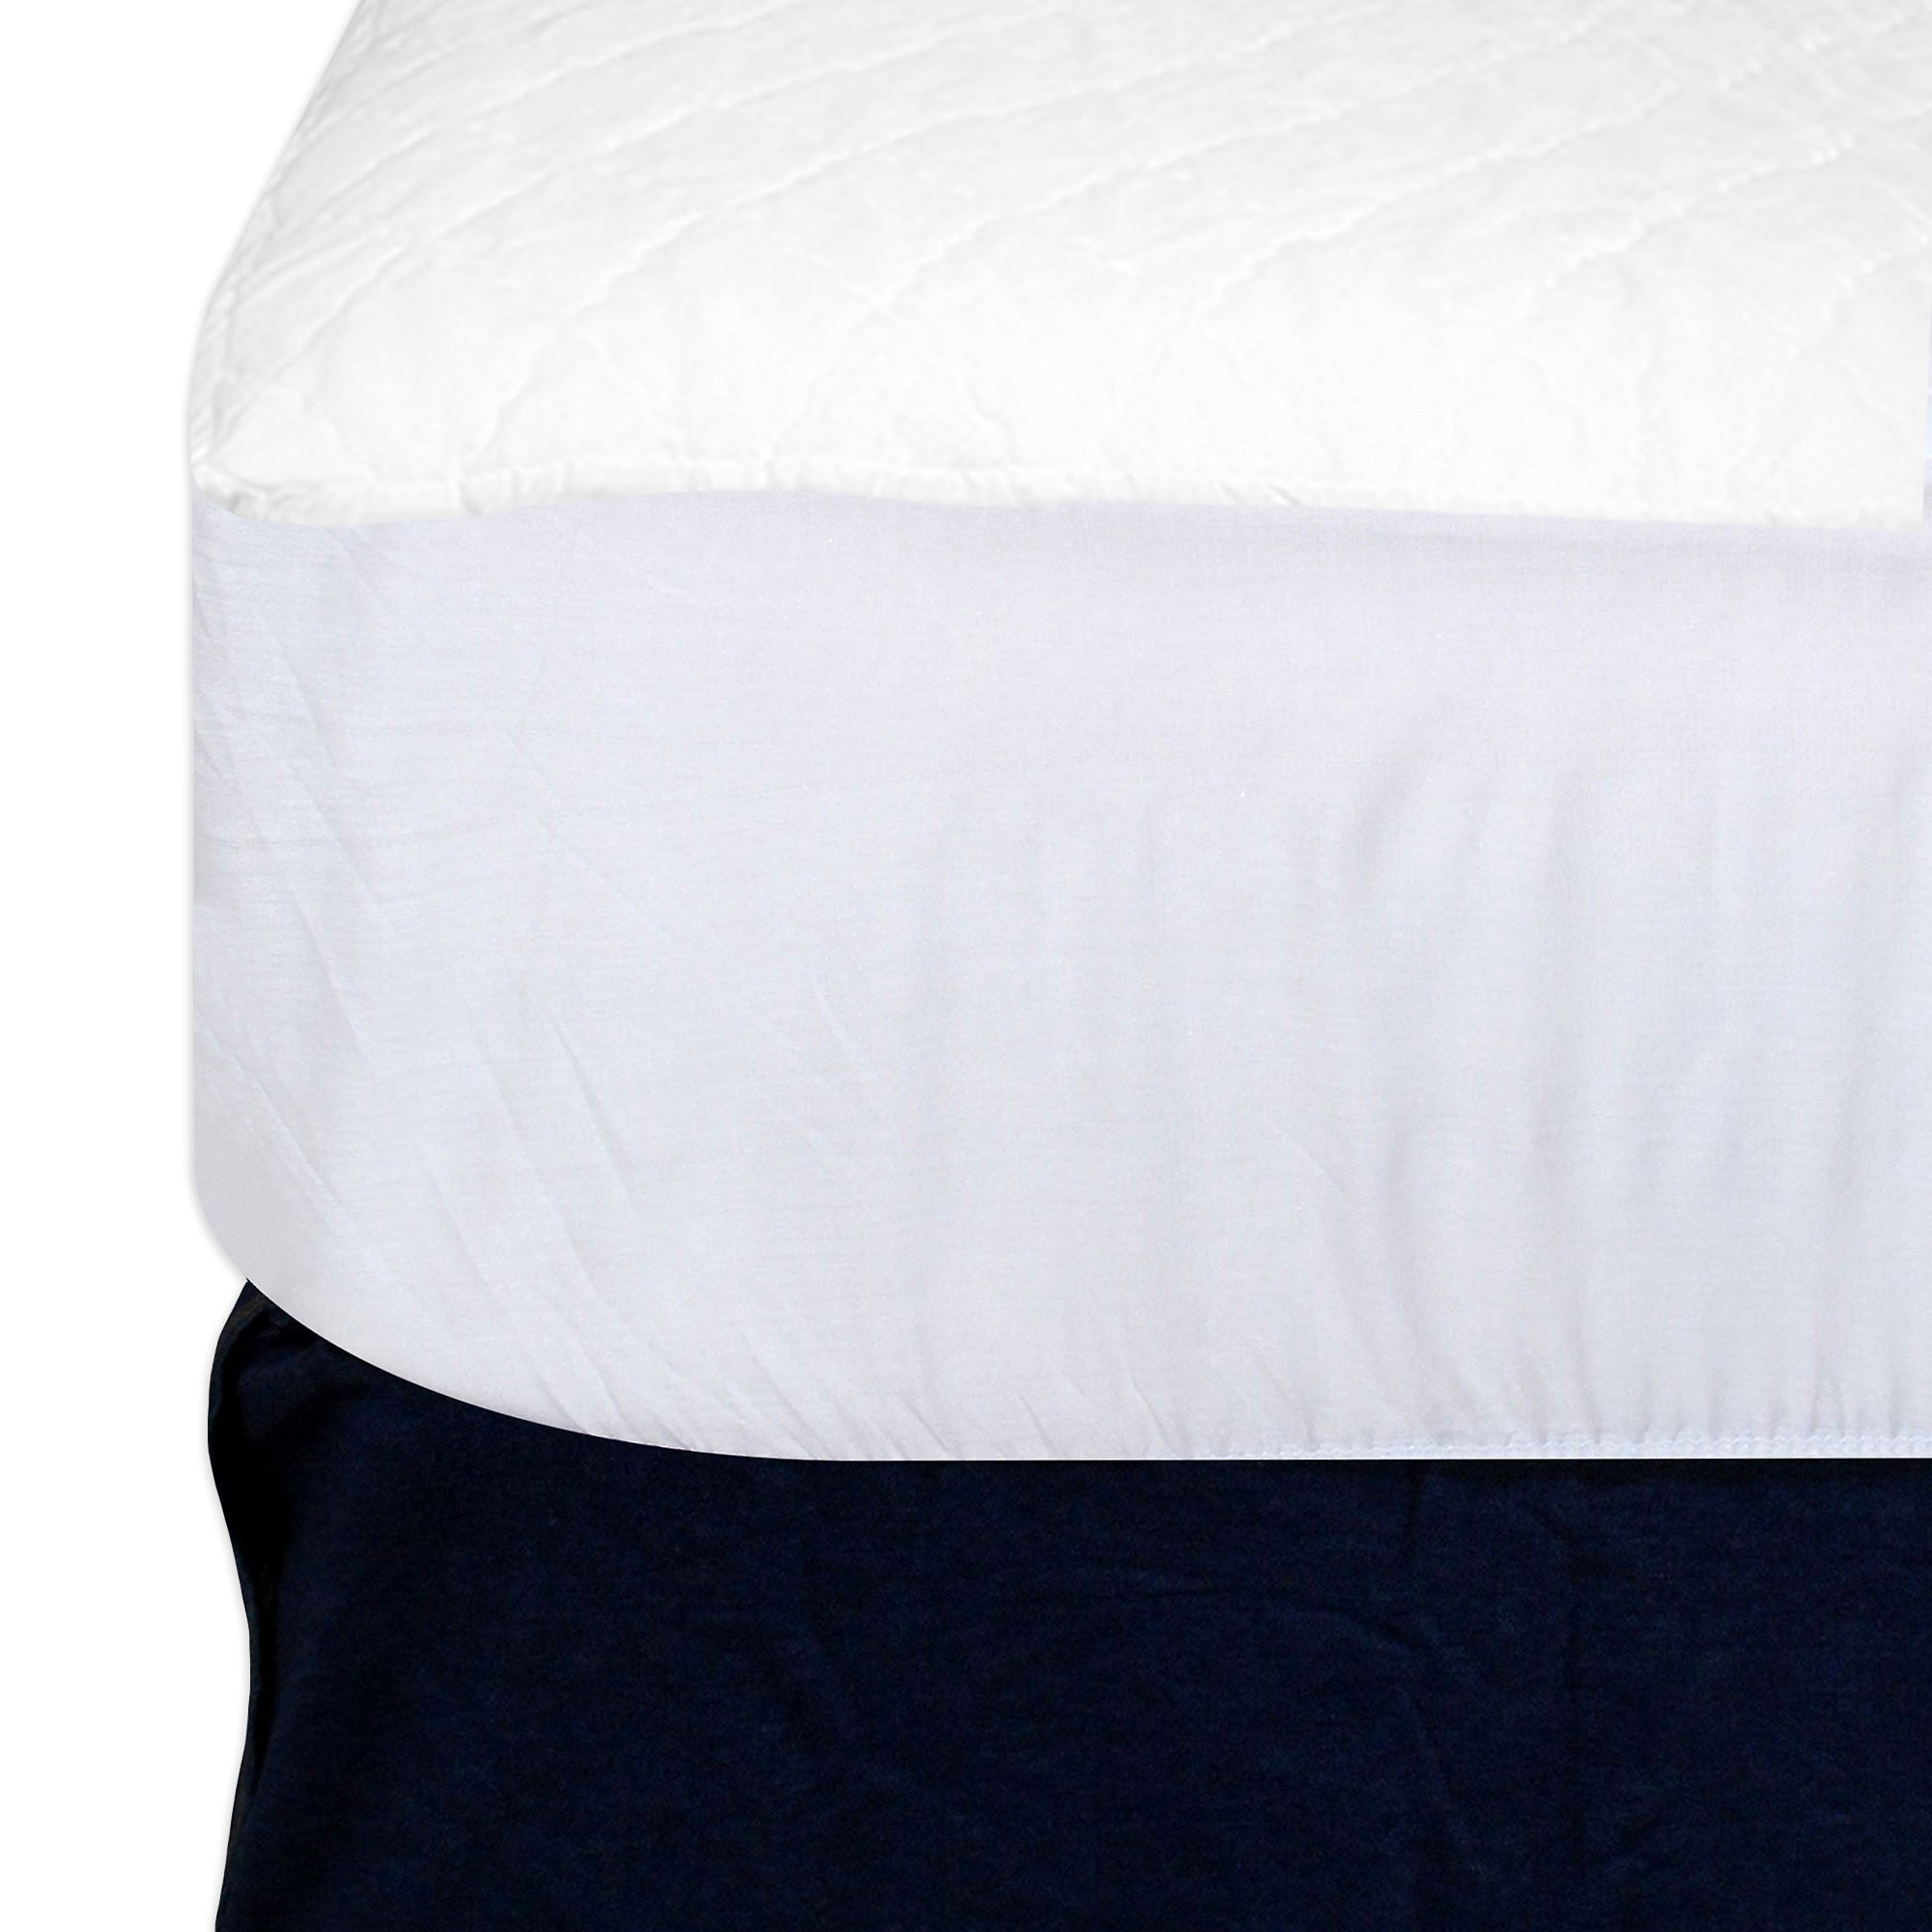 Standard Waterproof Mattress Pad